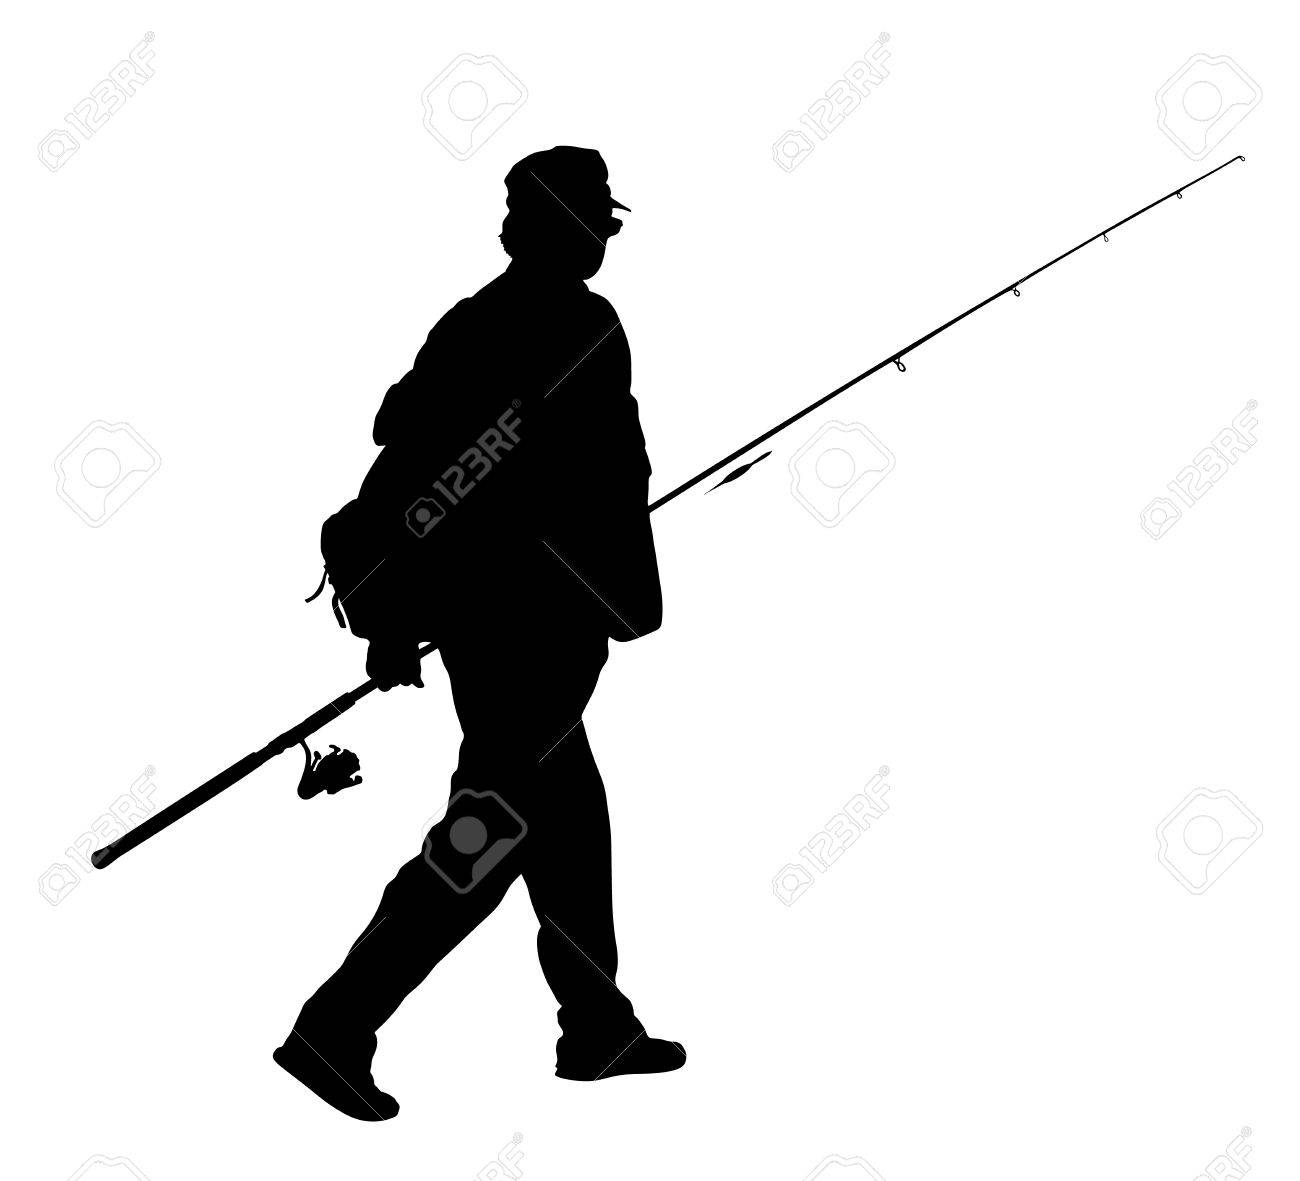 Fisherman vector silhouette illustration isolated on white background. - 72179982